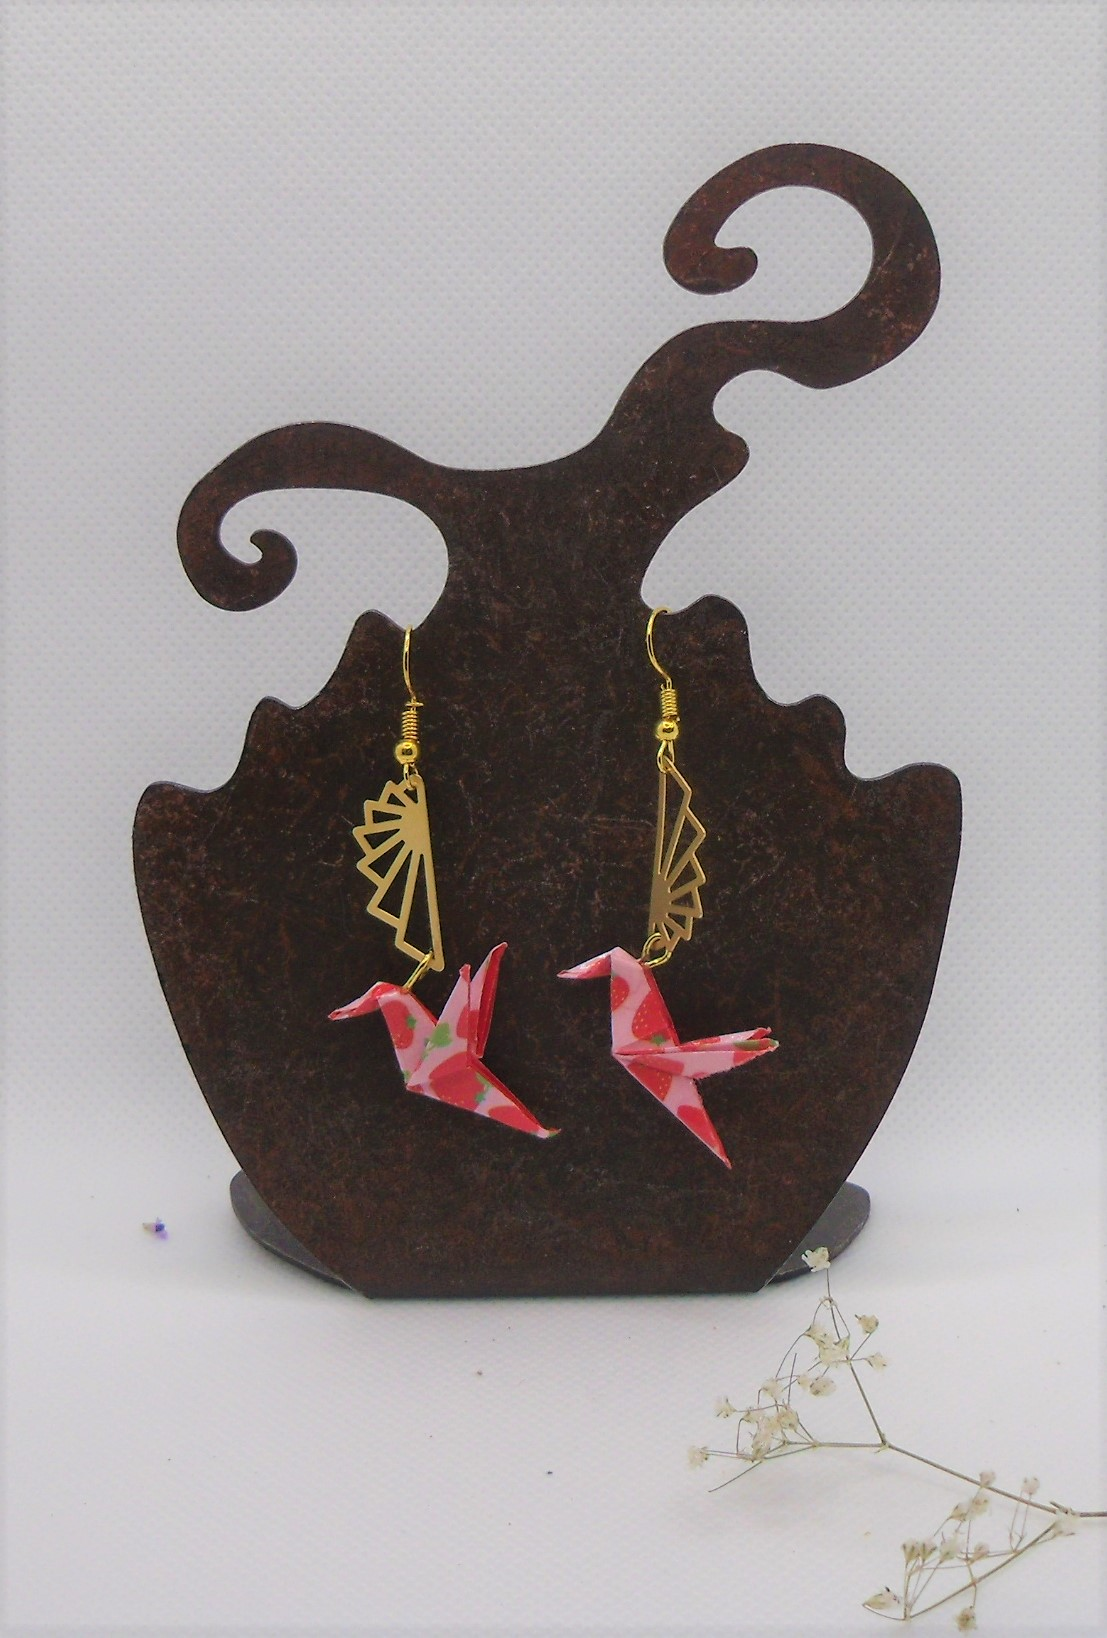 BOOco1 - 25€ - Boucles d'Oreilles Origami colombe - Indisponible